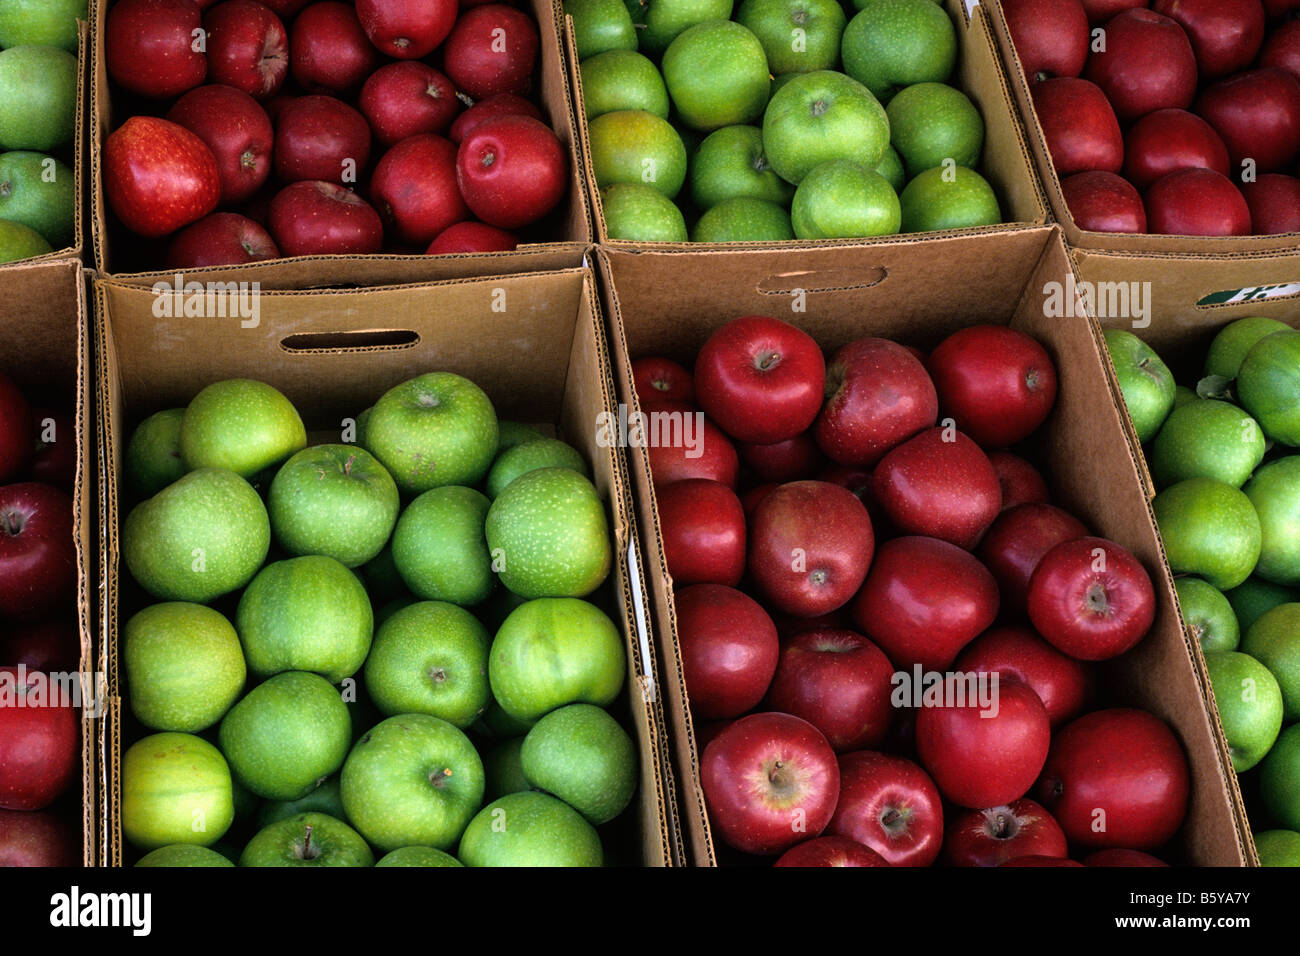 Apples being sold at farmers market Everett Washington State USA Stock Photo